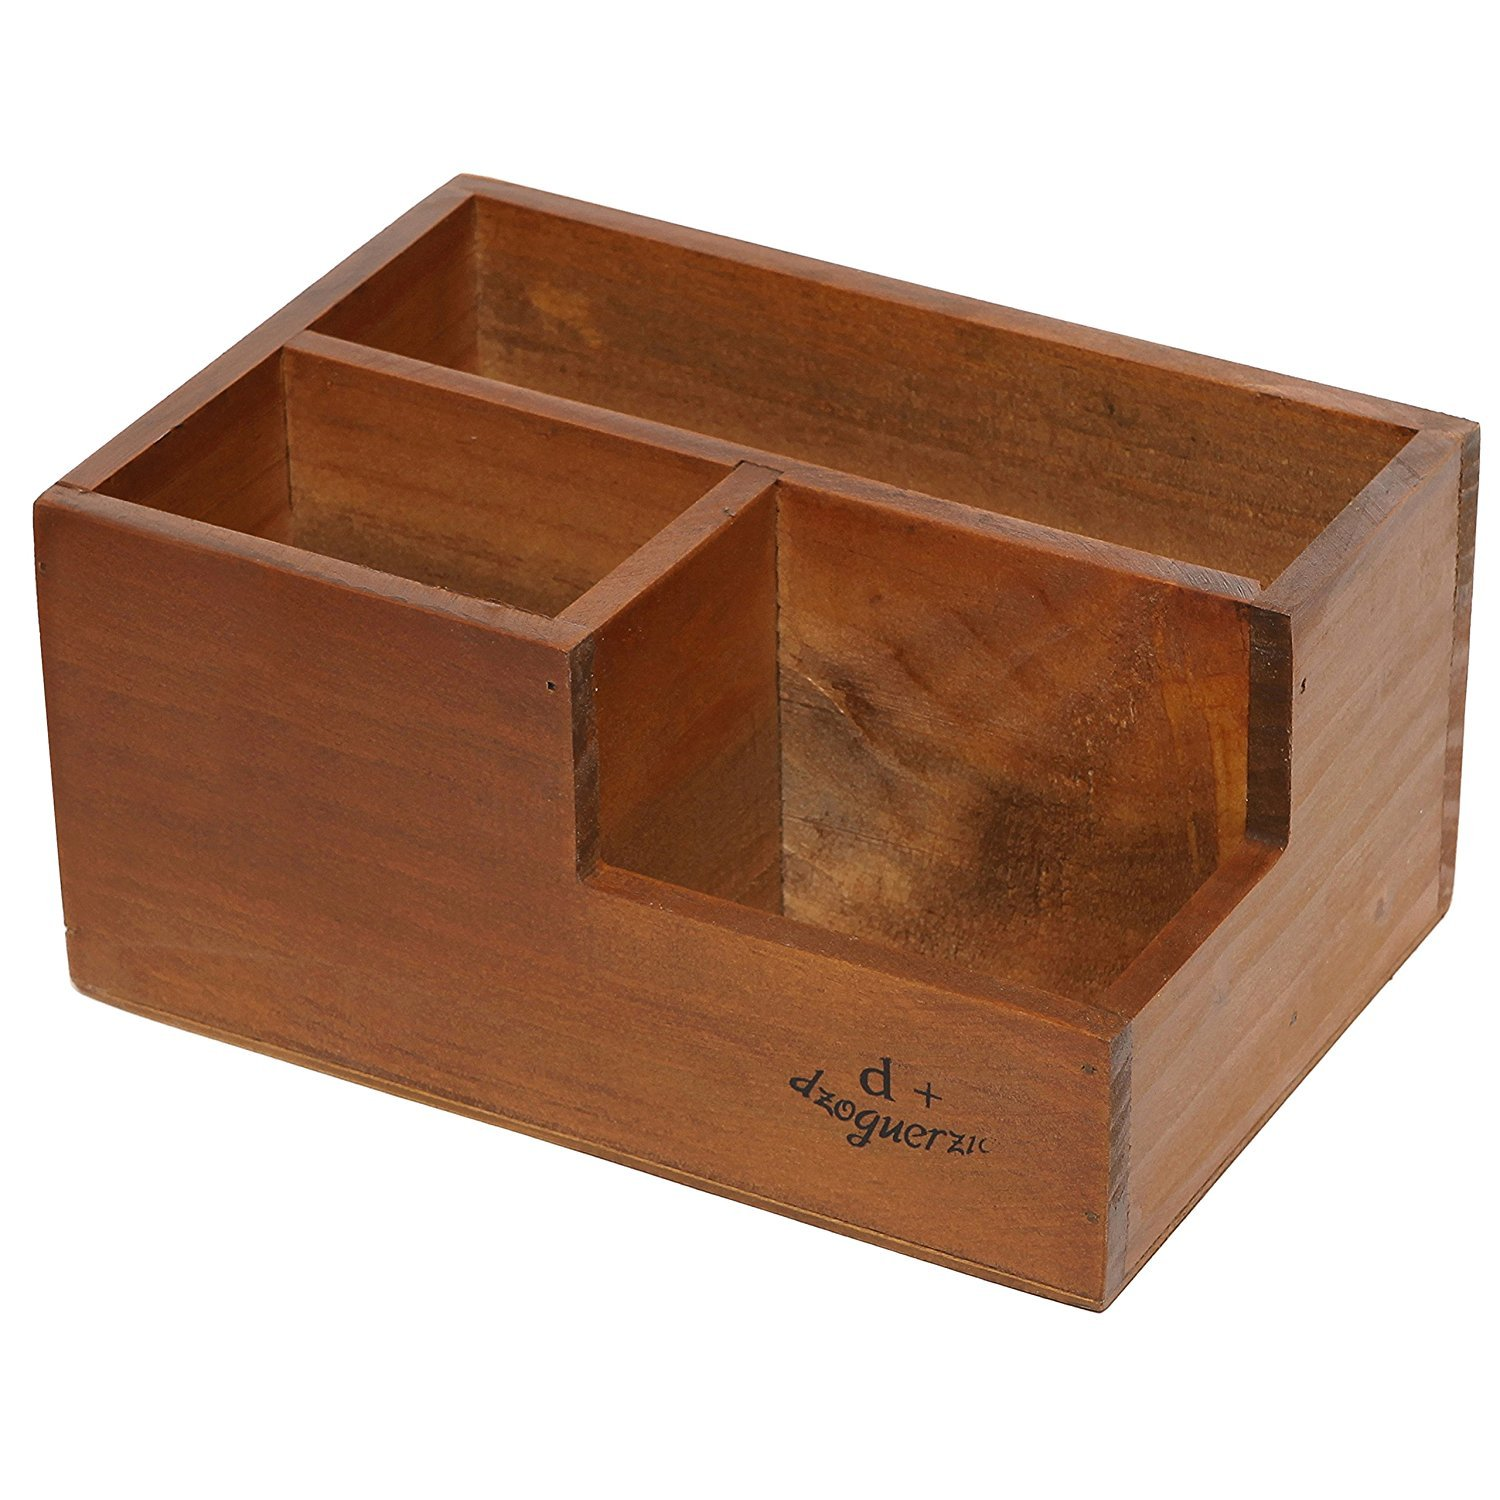 Chris-Wang Multifunctional 3-Compartment Wooden Desktop Office Supply Caddy/Pencil Holder/Desk Mail Organizer/Succulent Plants Planter(Classic Brown) by Chris.W (Image #3)